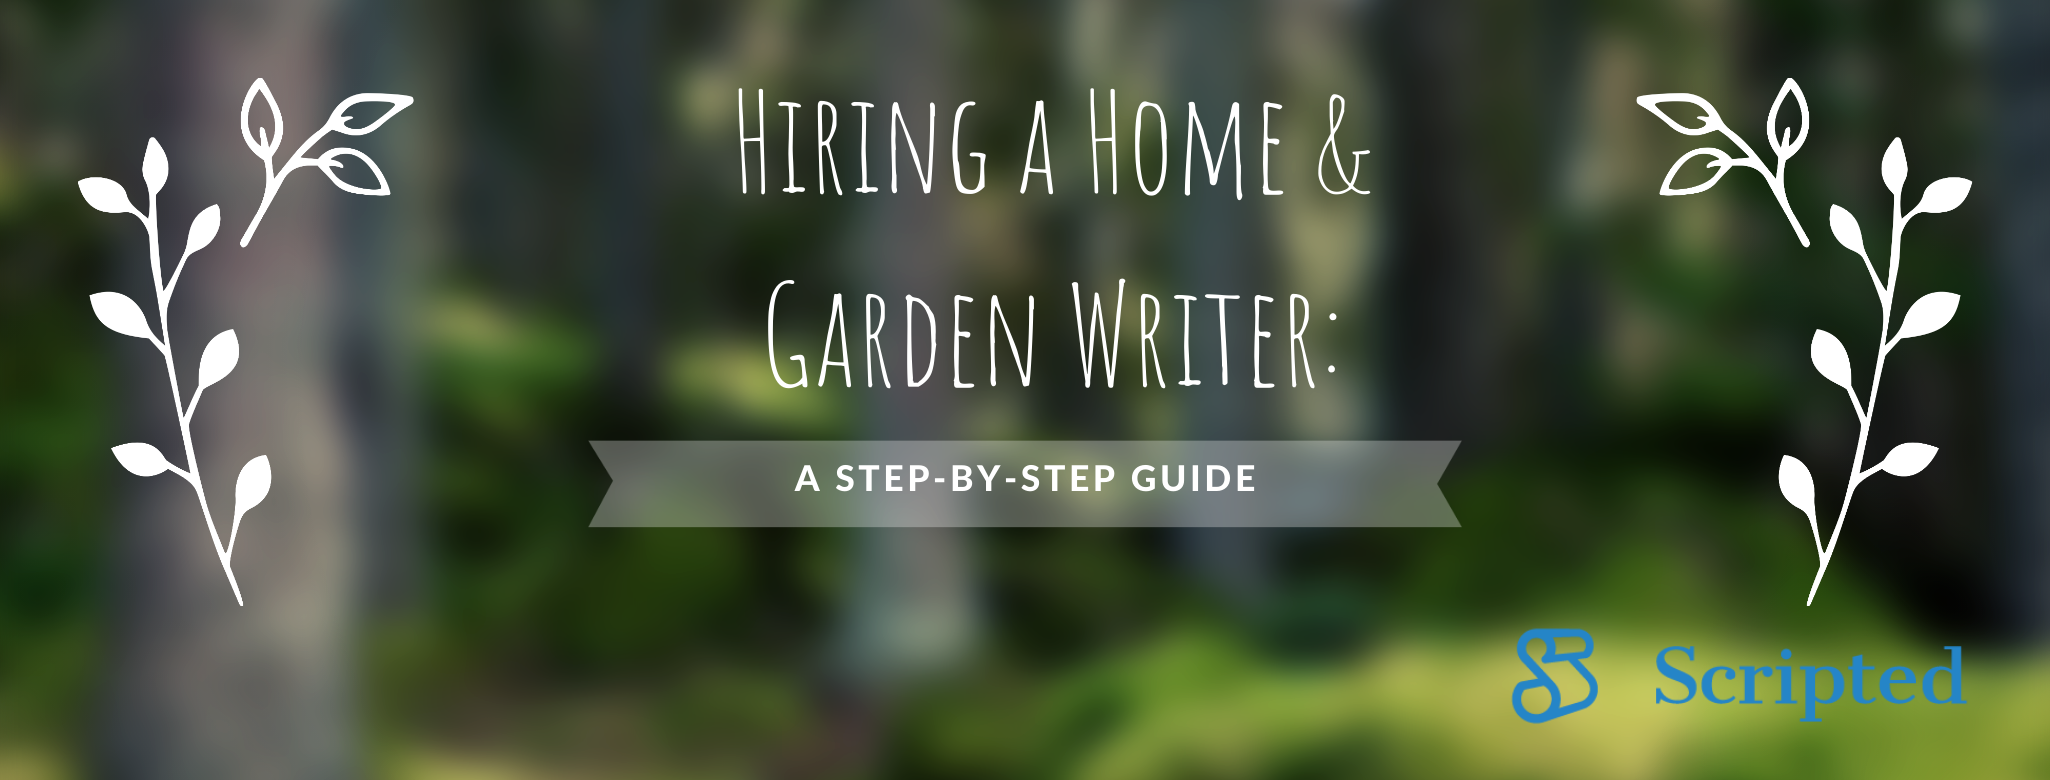 Hiring a Home & Garden Writer: A Step-by-Step Guide